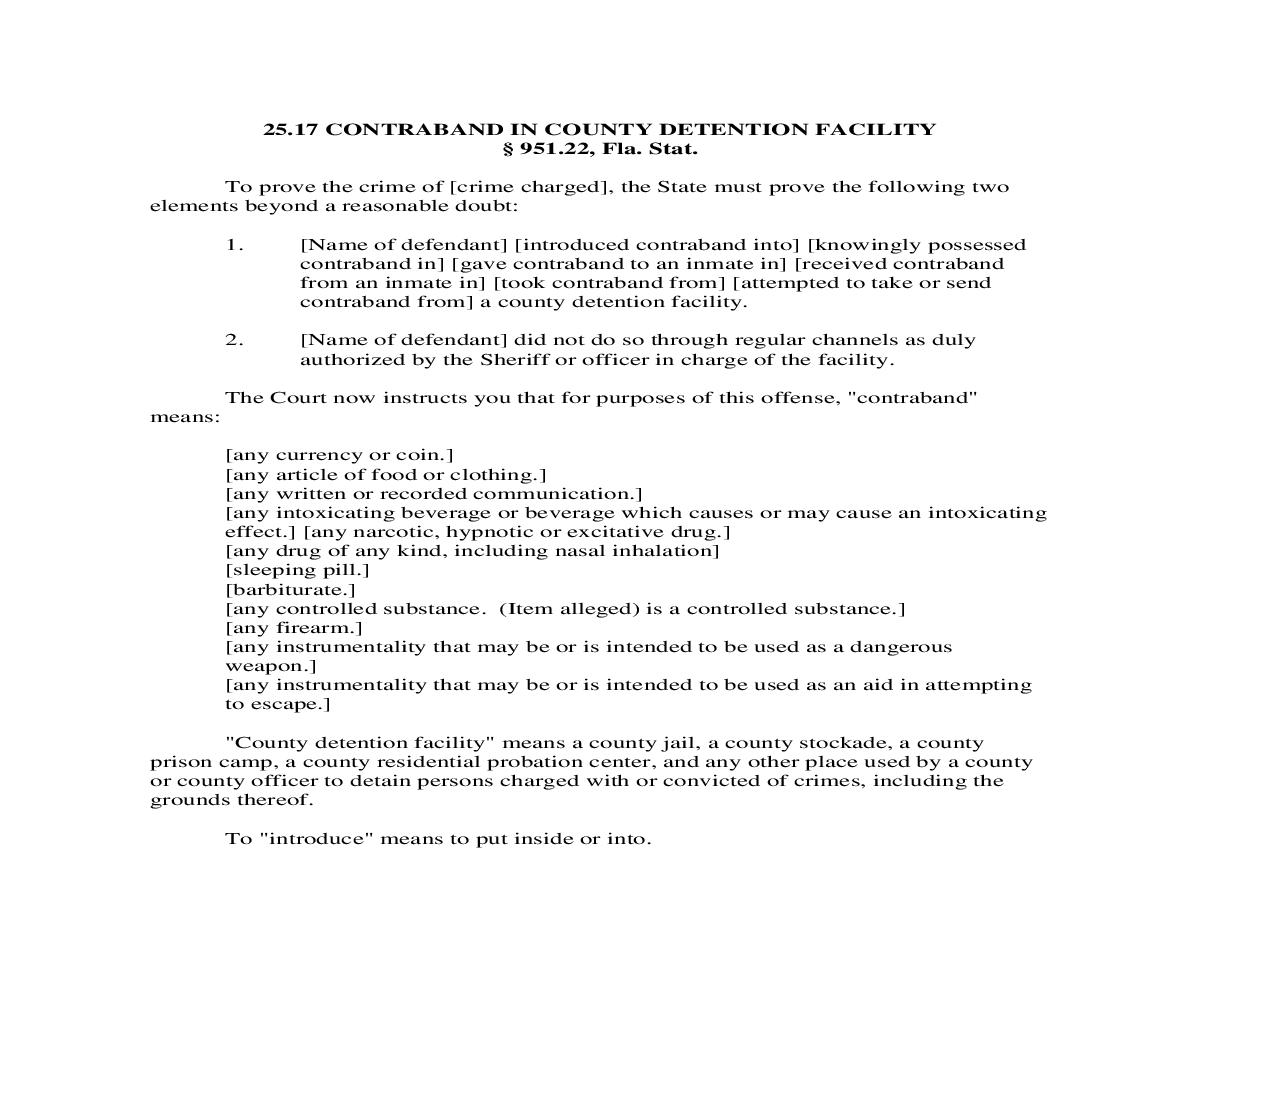 25.17. Contraband In County Detention Facility | Pdf Doc Docx | Florida_JI